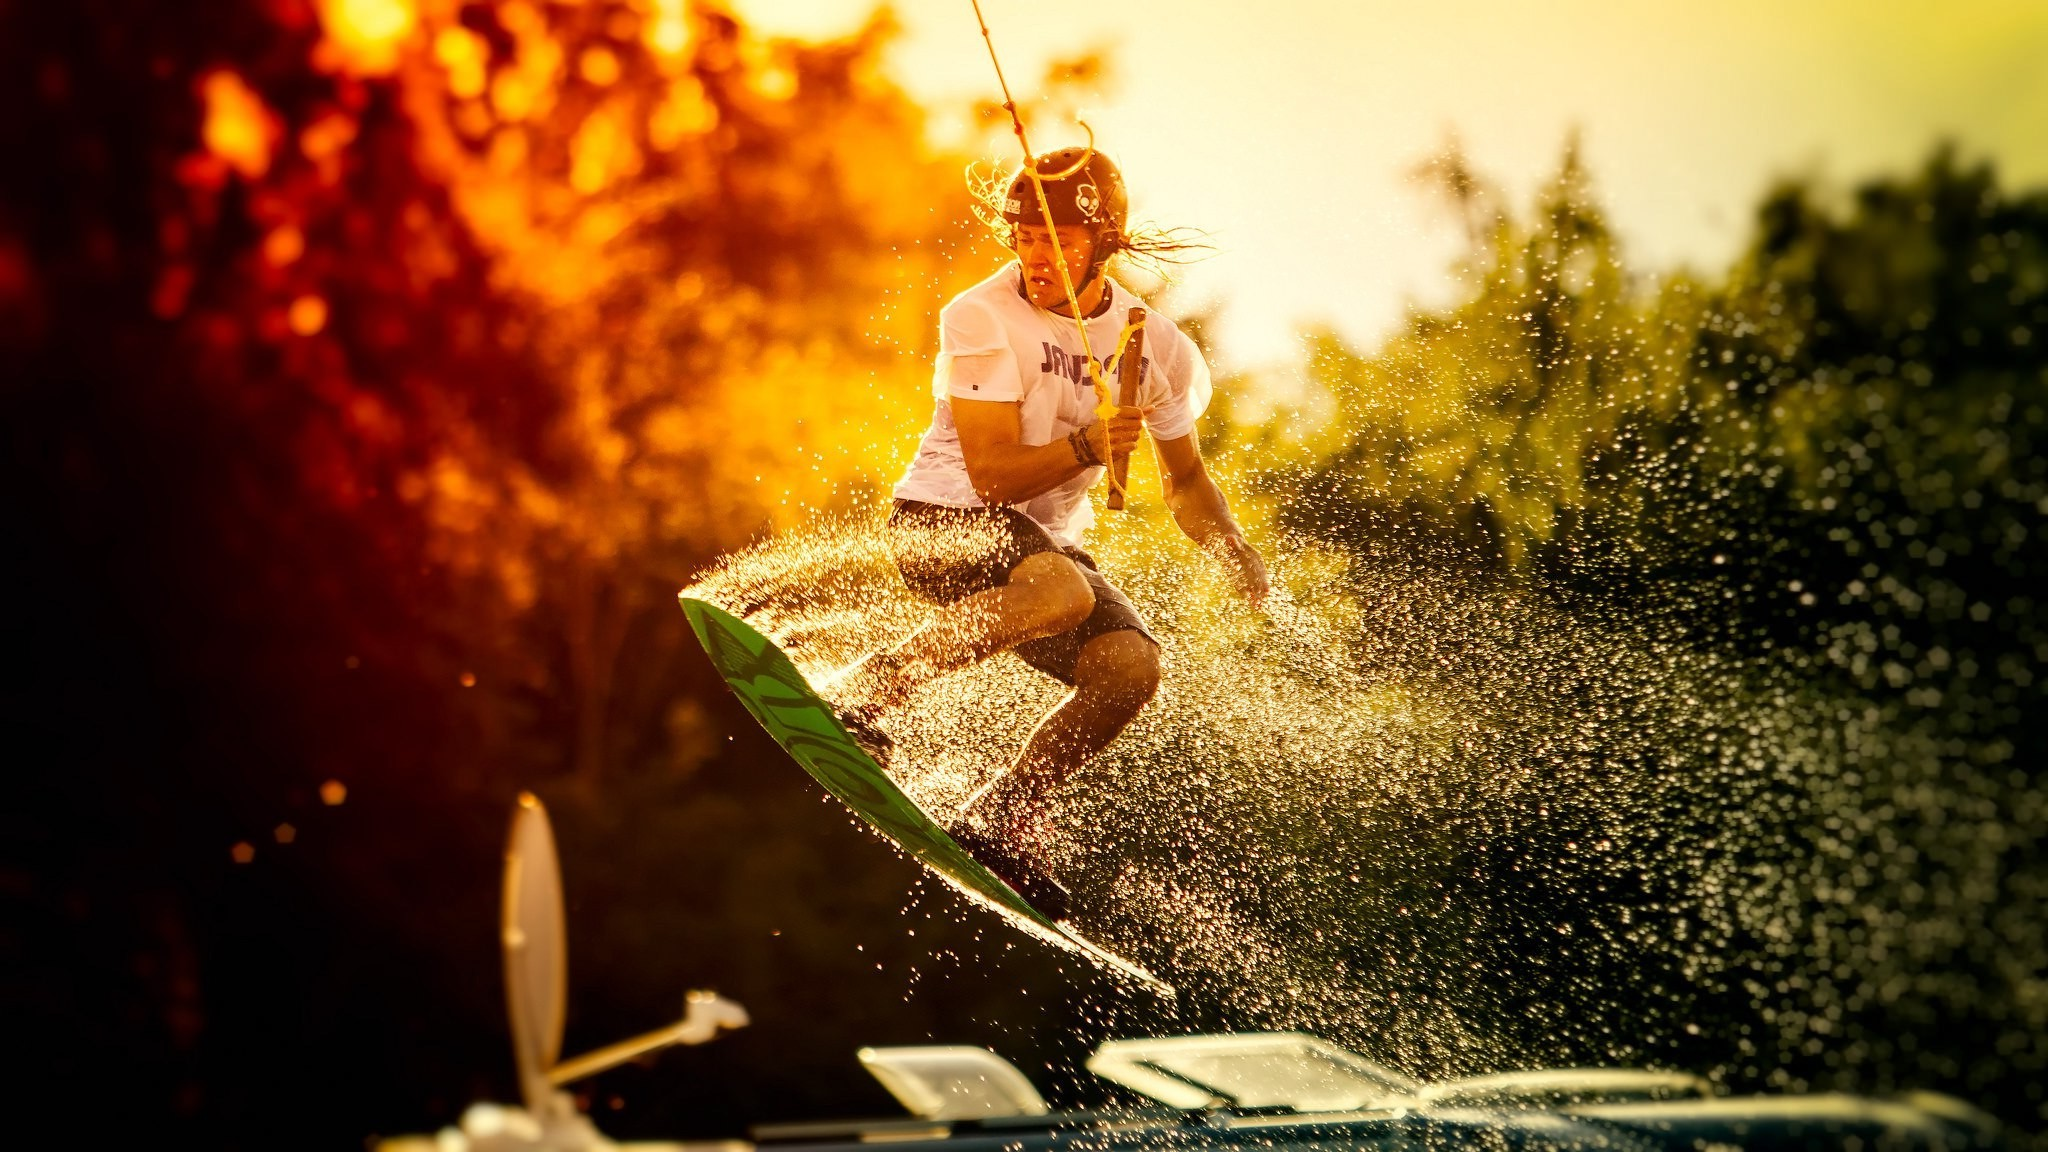 Pretty Anime Girl Wallpaper Wakeboarding Wallpapers Hd Desktop And Mobile Backgrounds